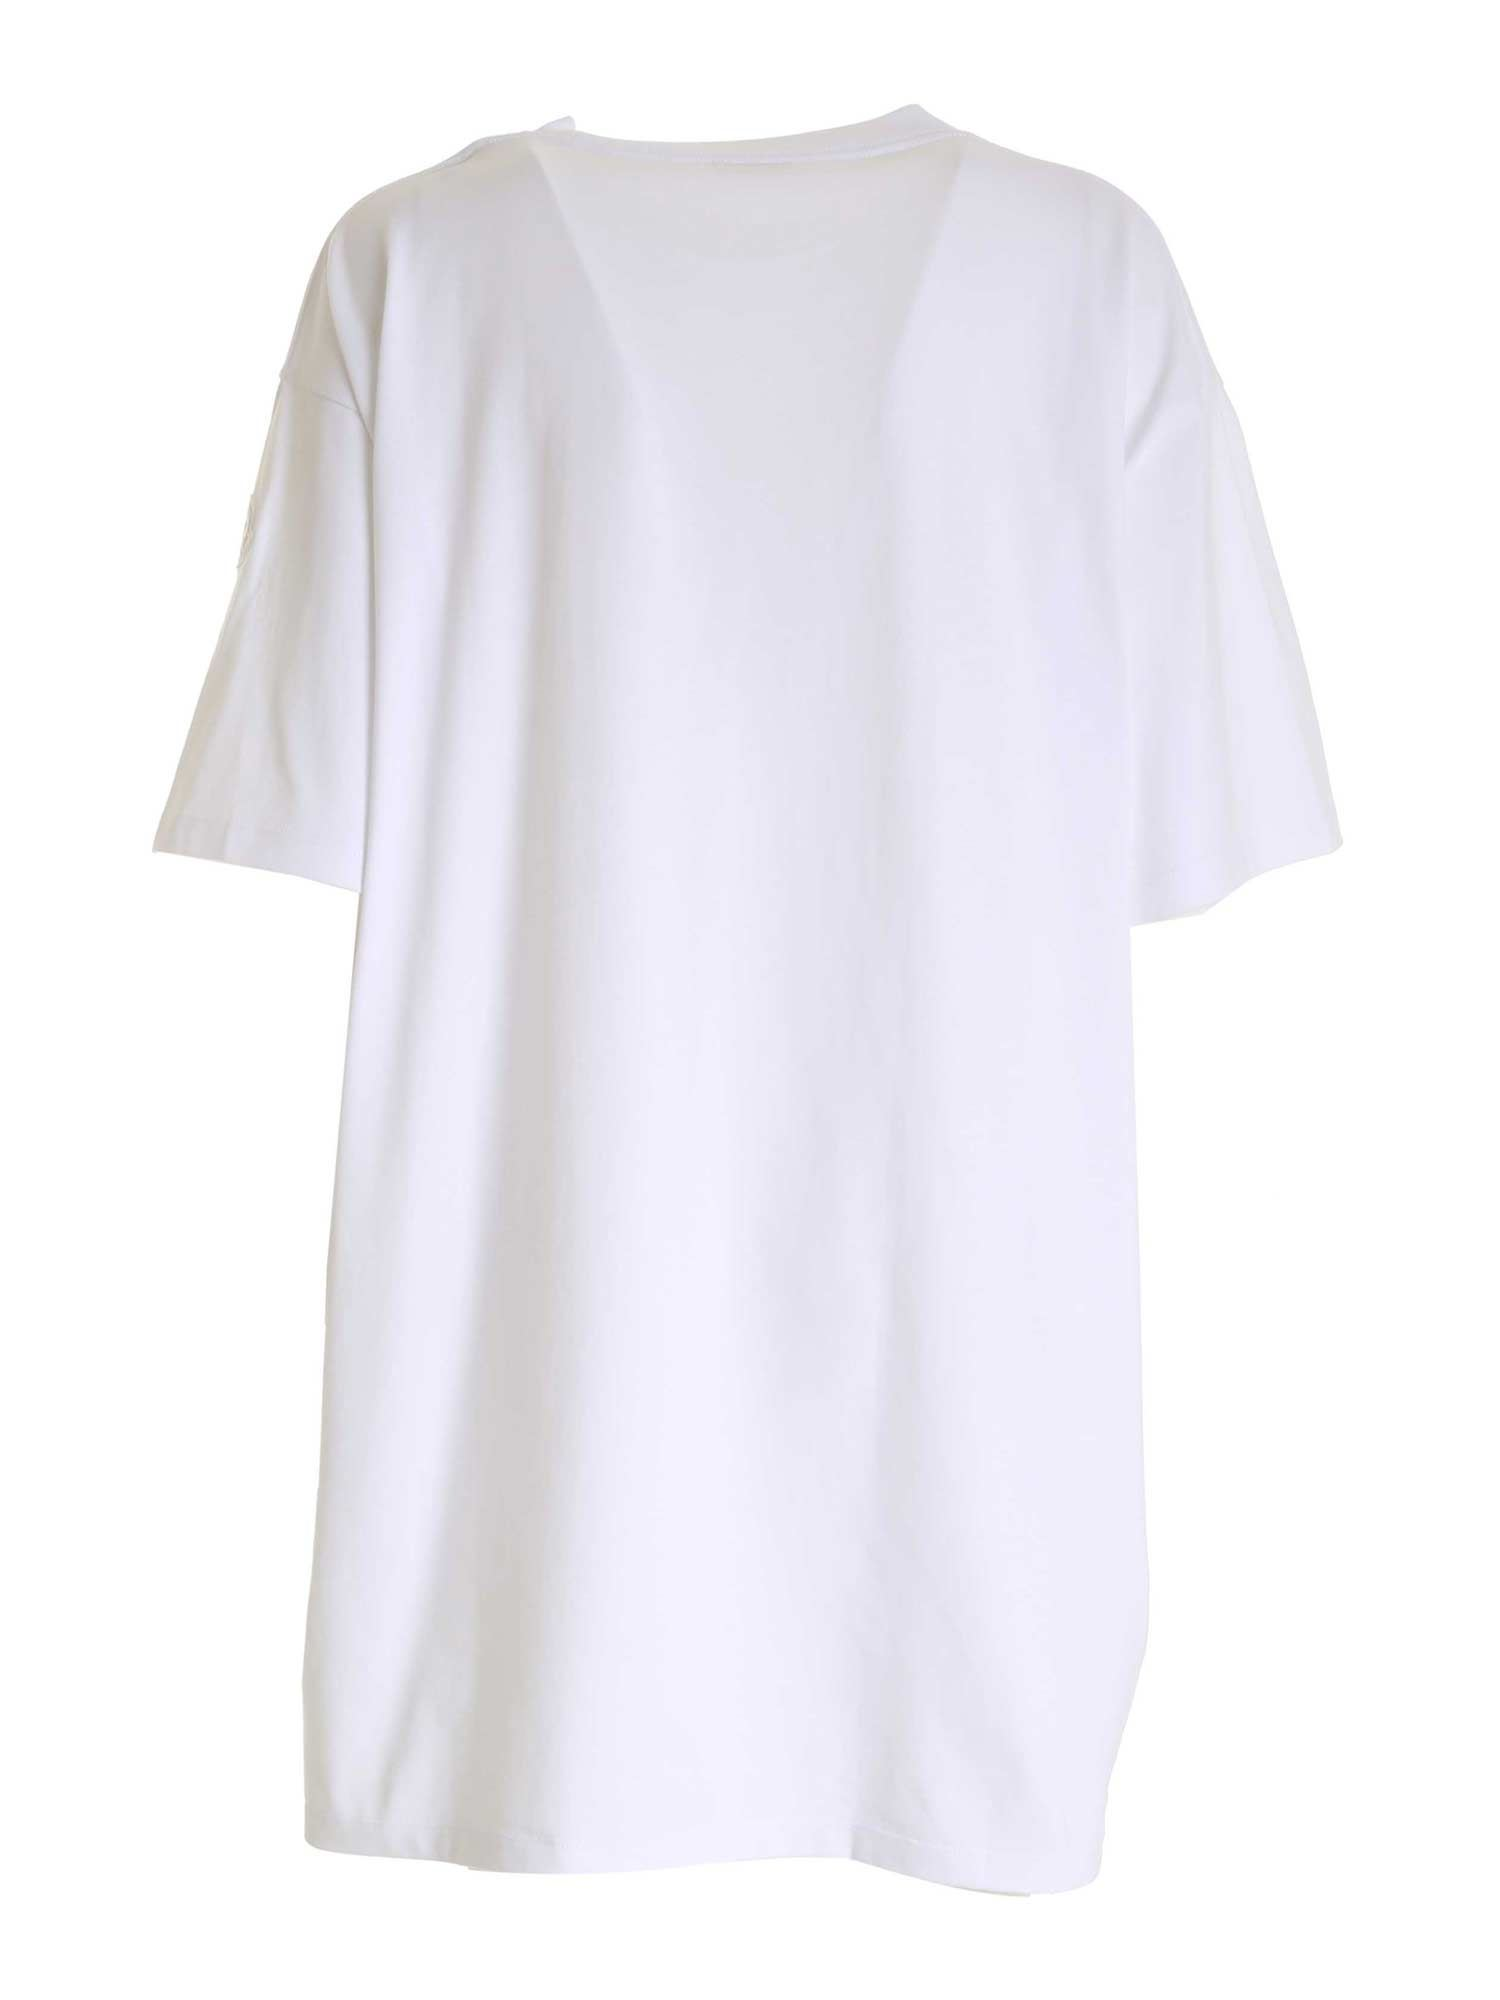 BRANDED MAXI T-SHIRT IN WHITE MONCLER   11   8C7A210829HP001